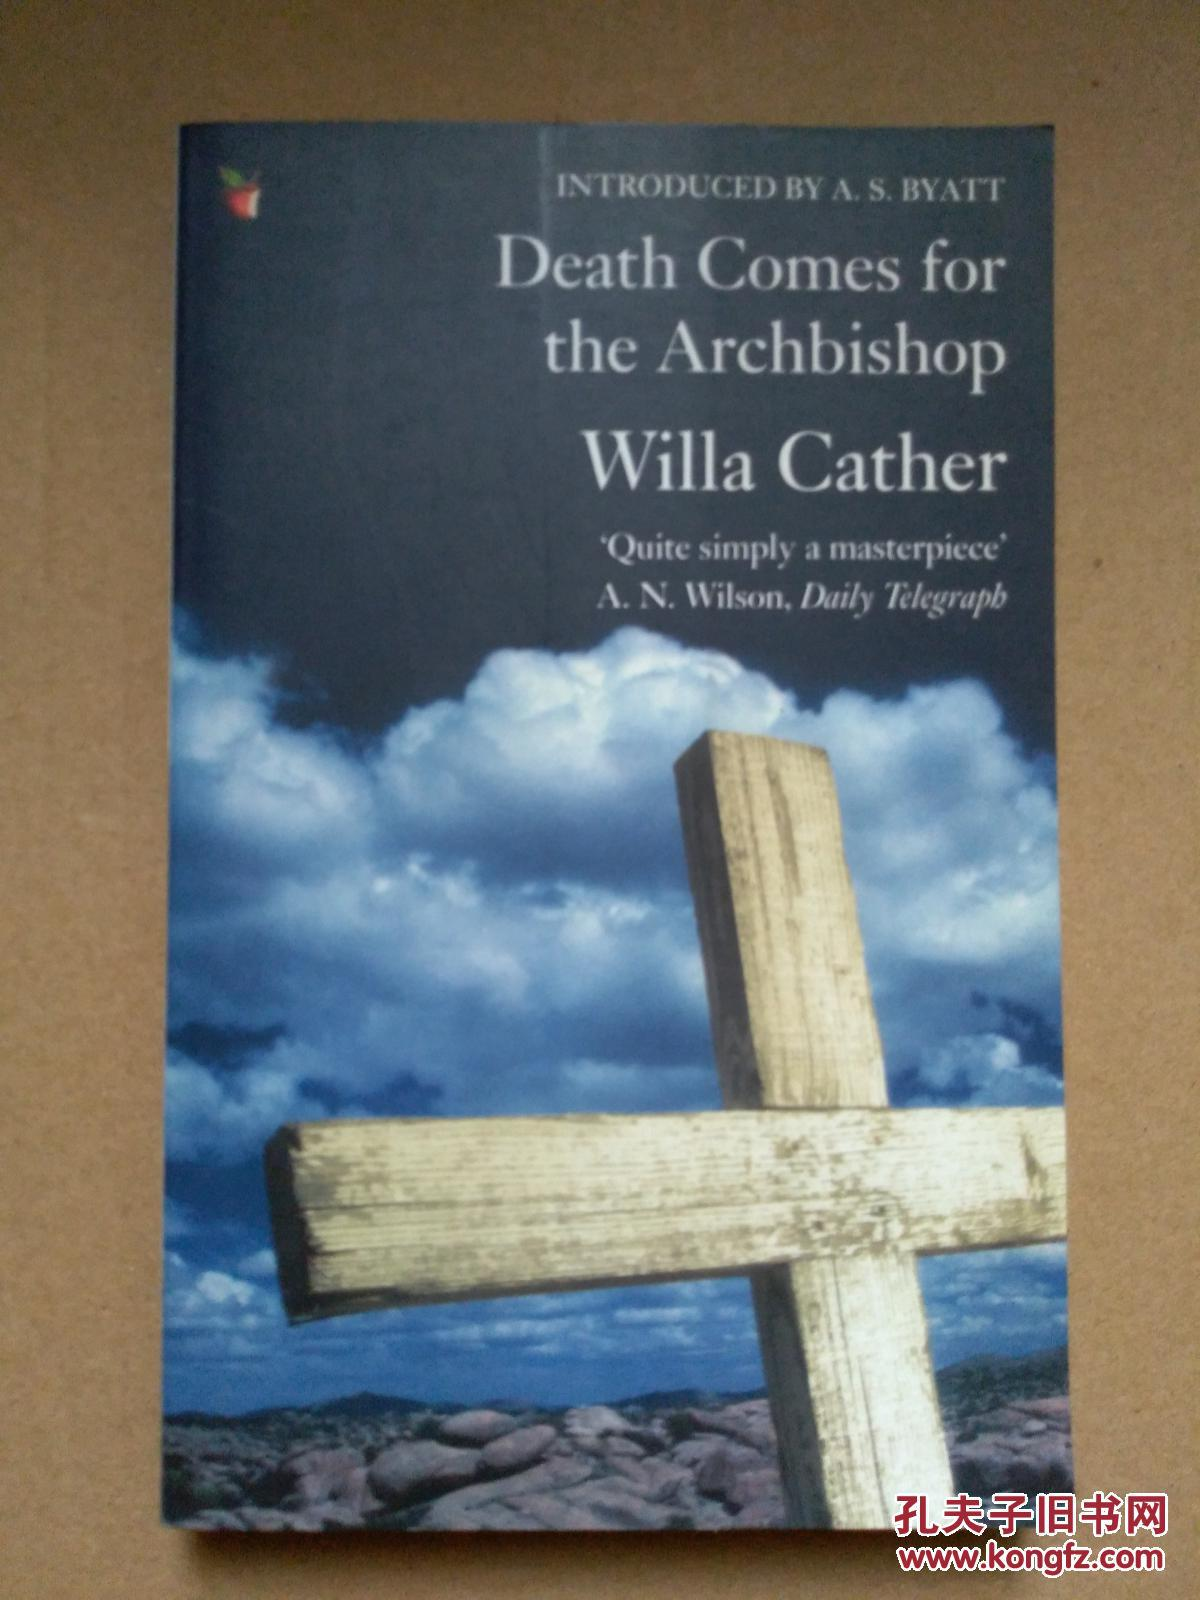 the theme of living life to the fullest in the book death comes for the archbishop Through one man's story, willa cather fashions a thumbprint history of santa fé, new mexico and its environs death comes for the archbishop takes place in the mid-19th century, but hundreds of years'-worth of prior events are brought to life in the famed scribe's limped prose.